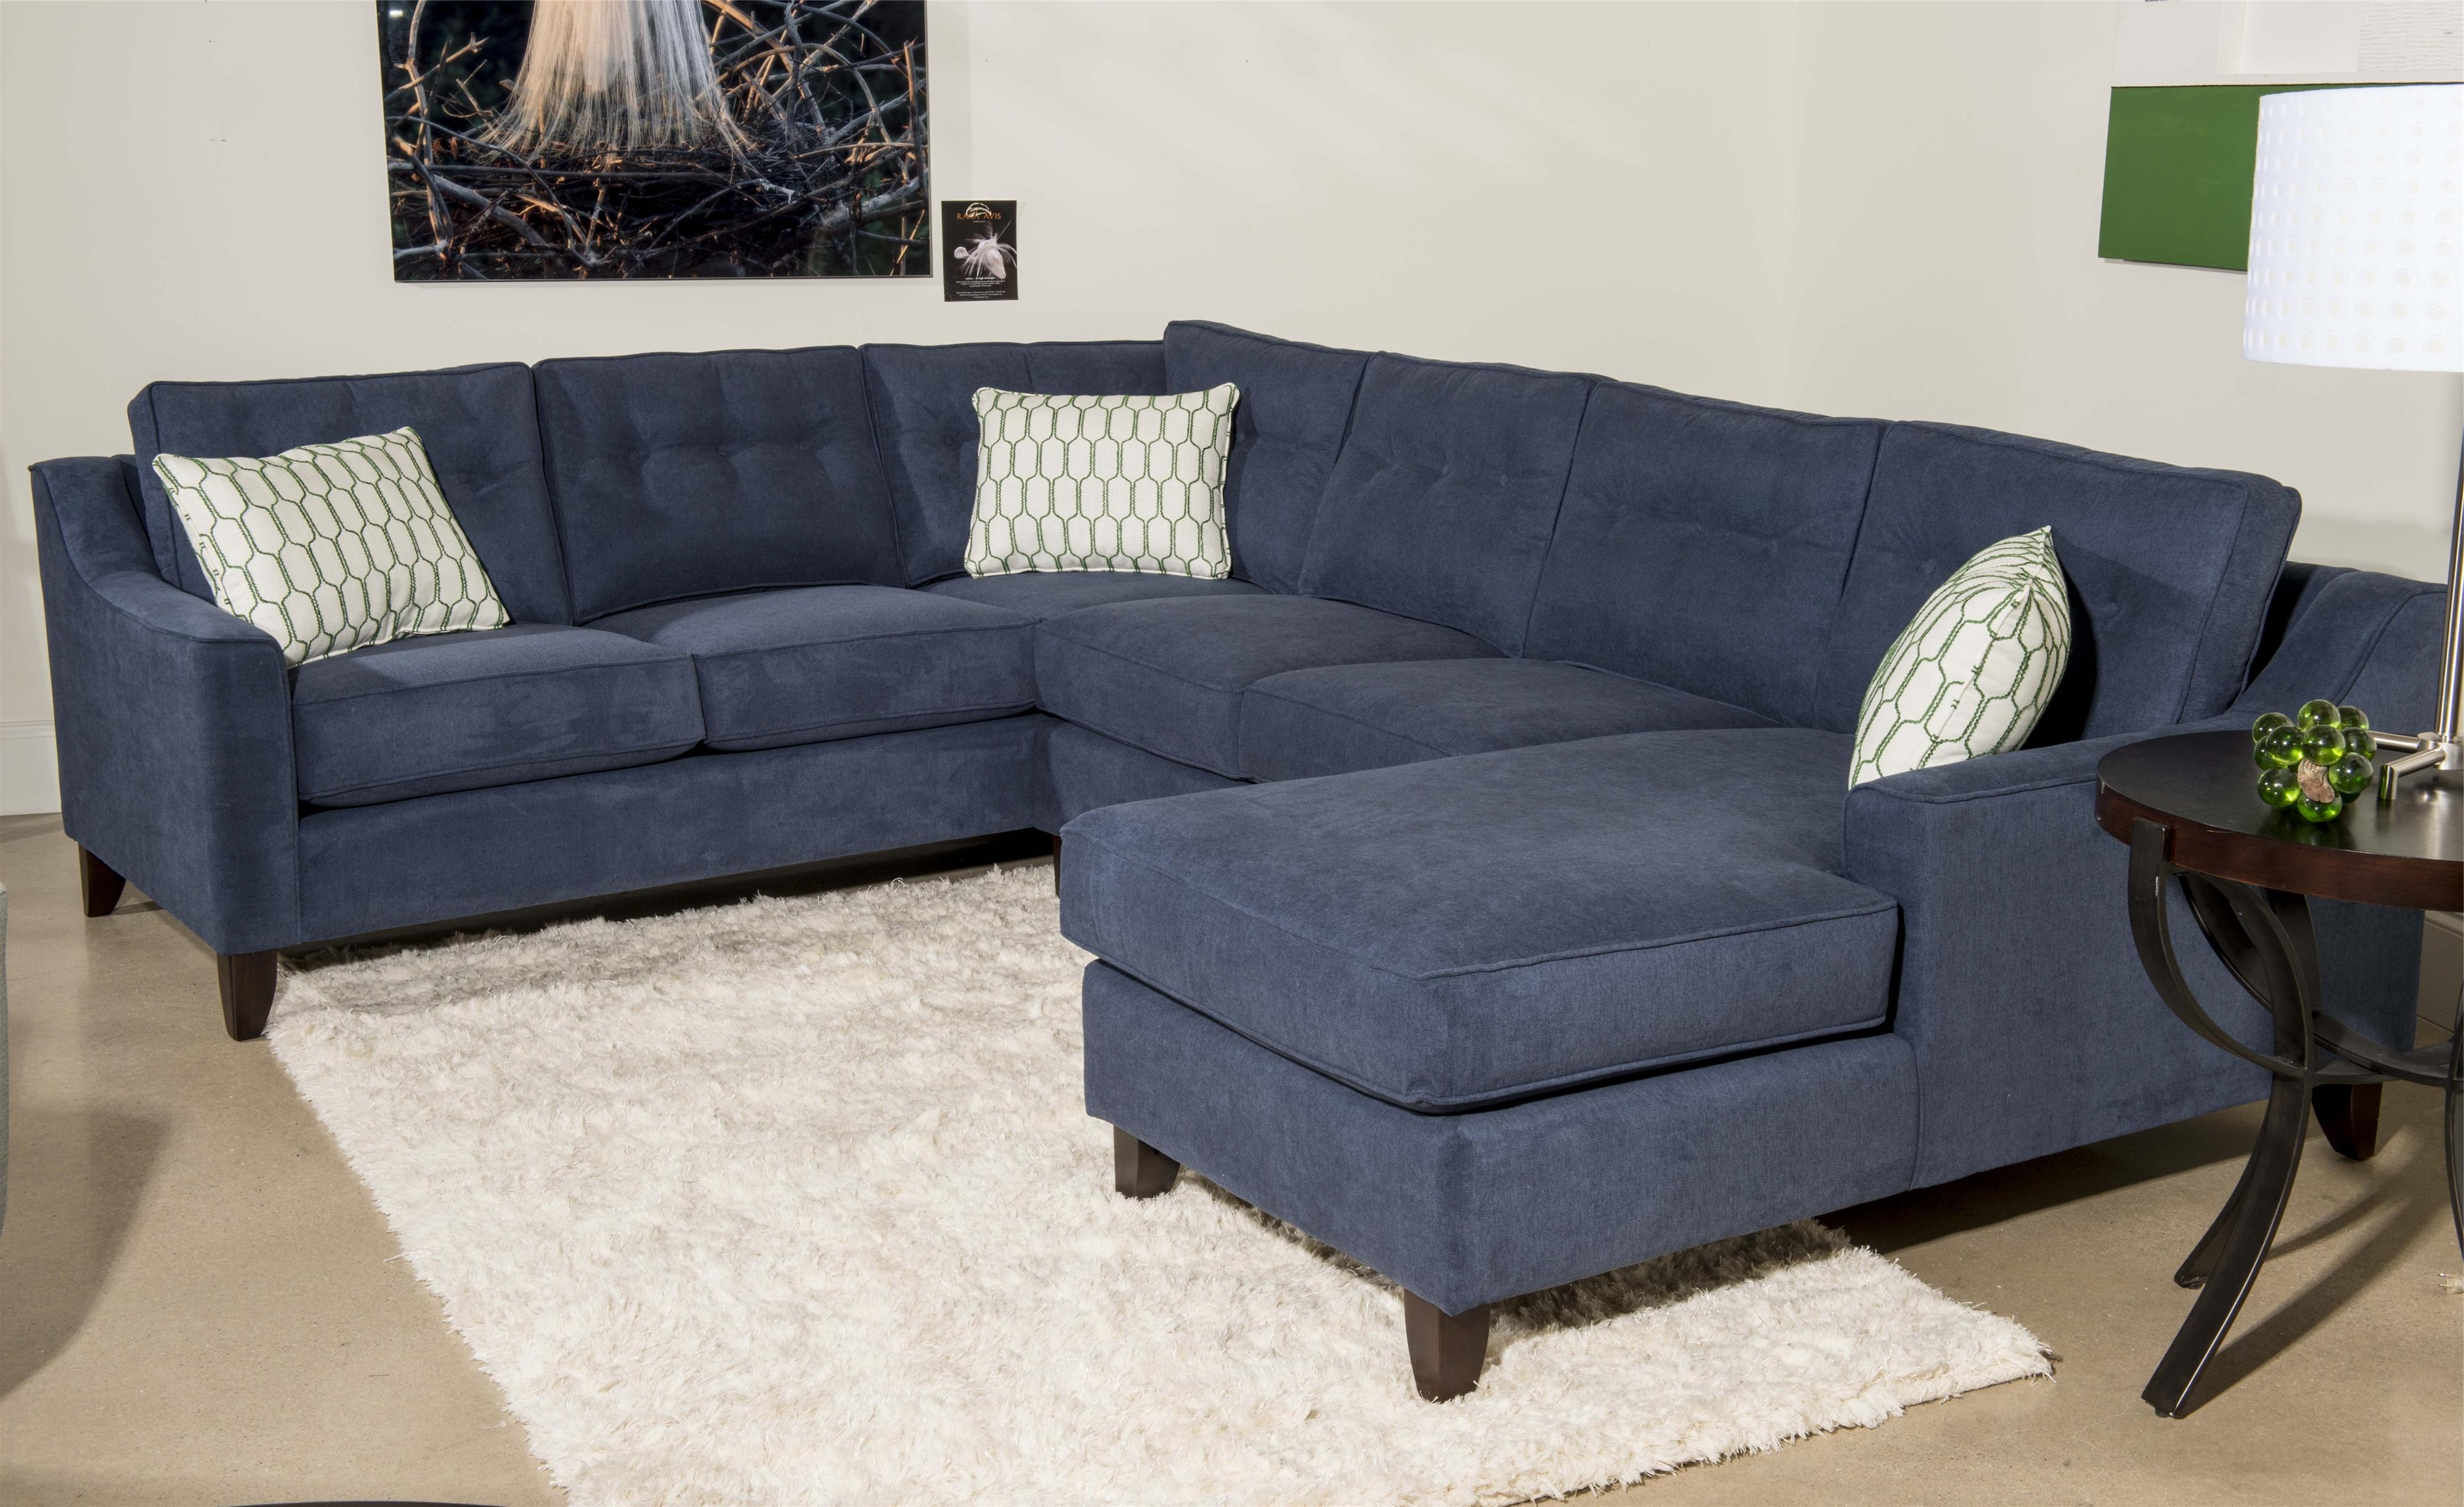 Well Liked Contemporary 3 Piece Sectional Sofa With Chaiseklaussner With Regard To Gardiners Sectional Sofas (View 13 of 20)